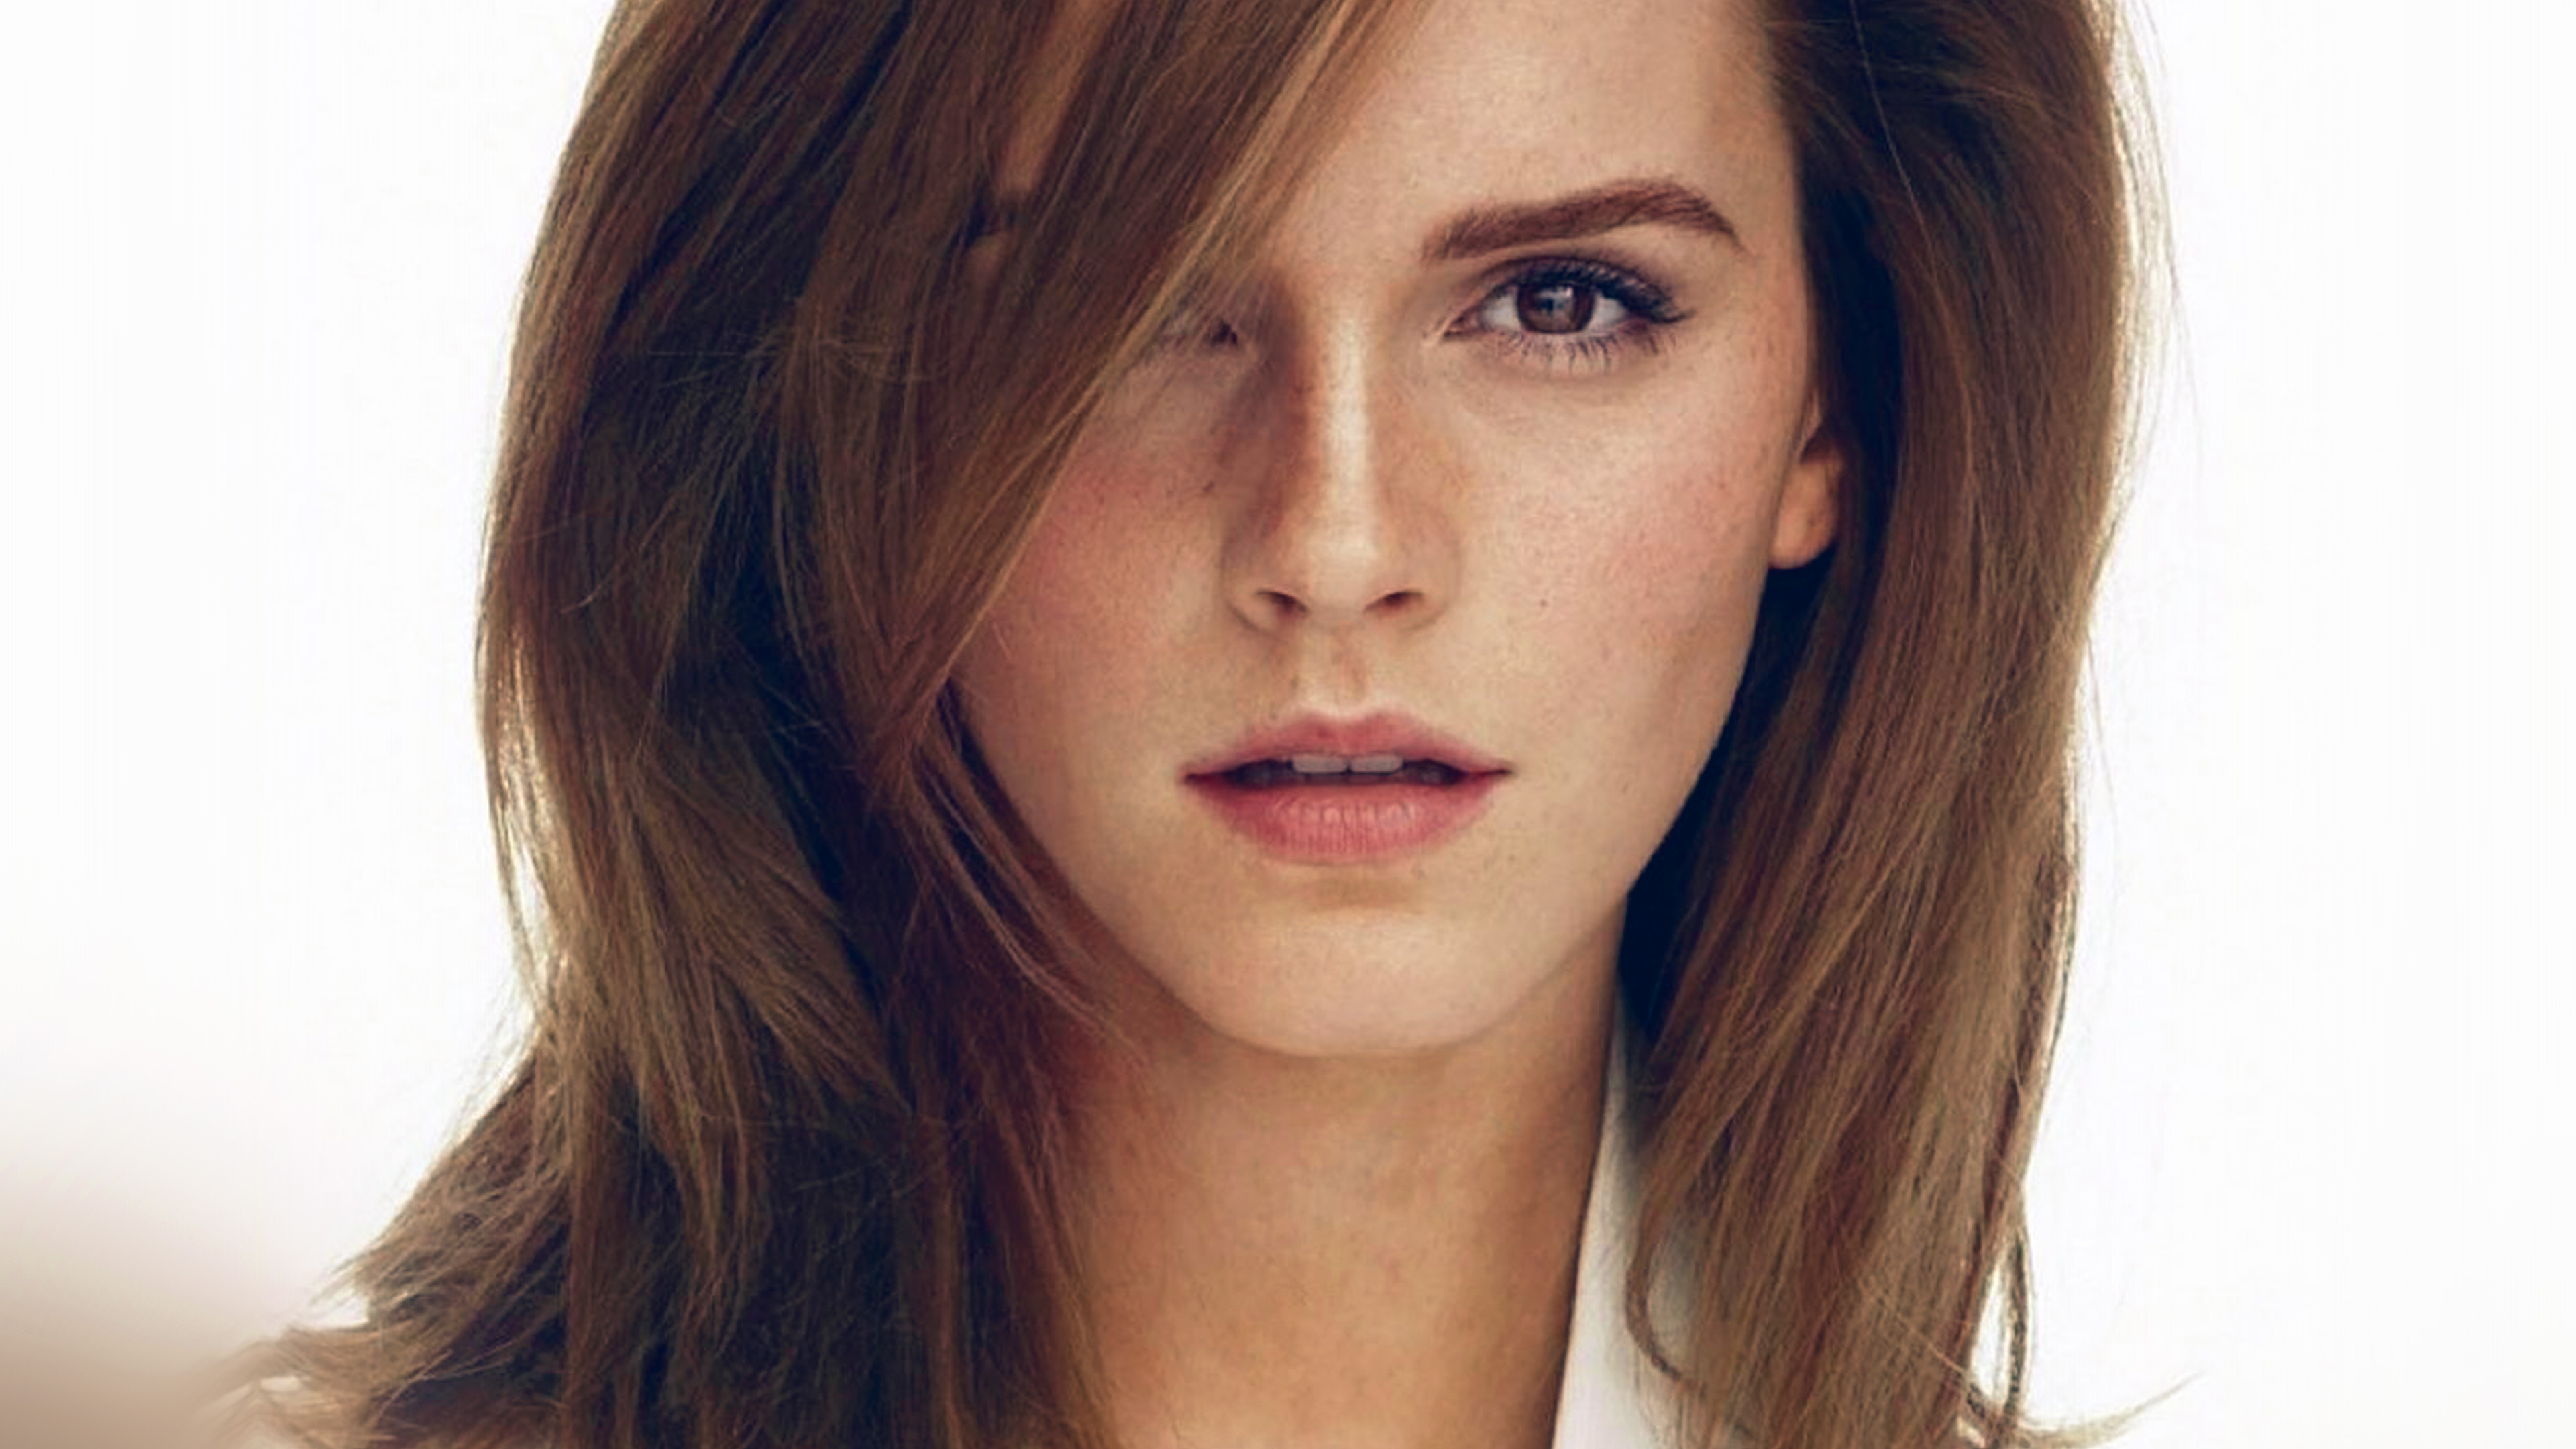 Fall Wallpaper For Macbook Pro Hp25 Girl Emma Watson Face Actress Film Wallpaper